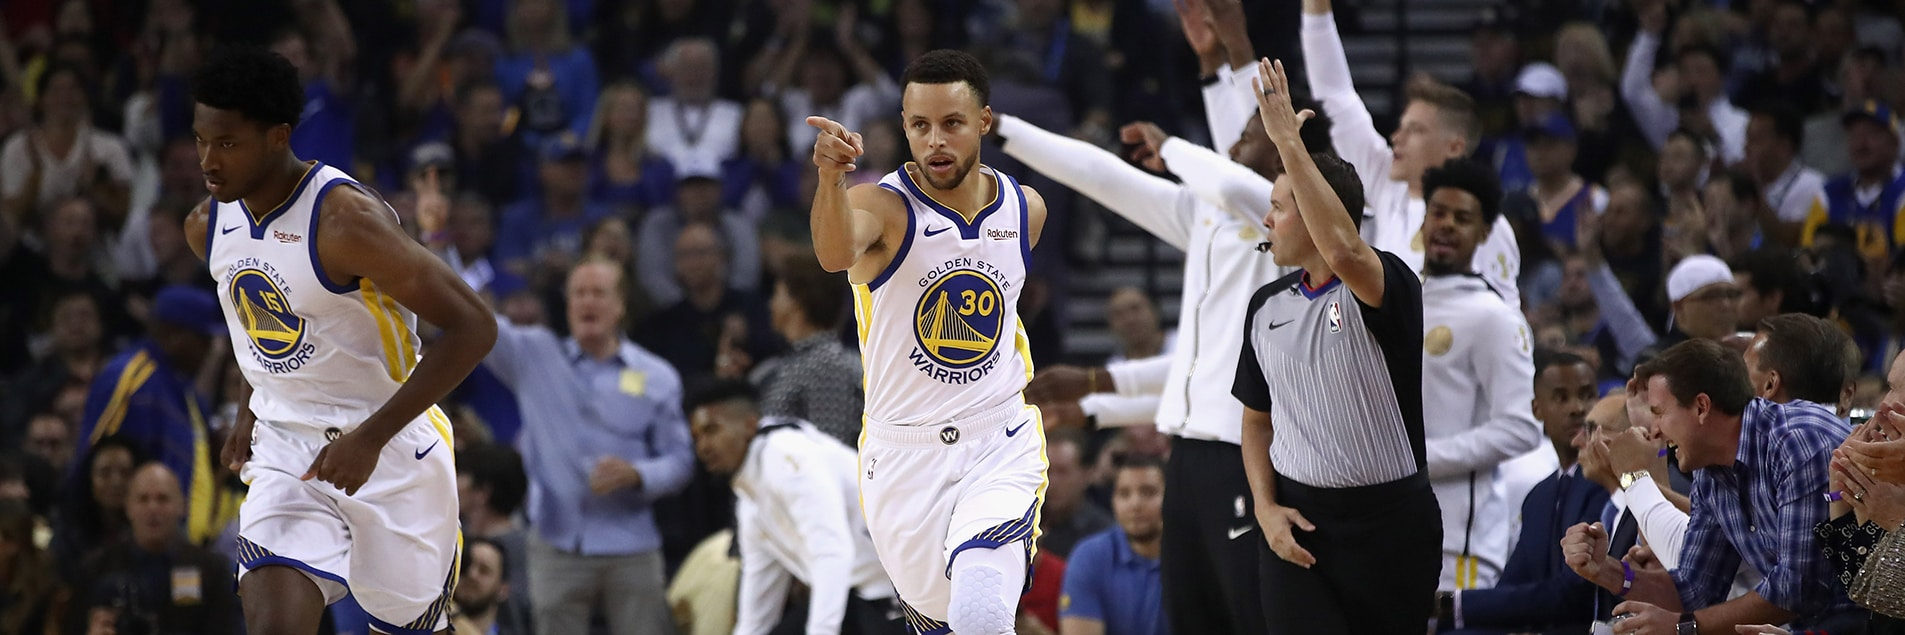 Curry Leads Warriors to Opening Night Victory | Golden State Warriors